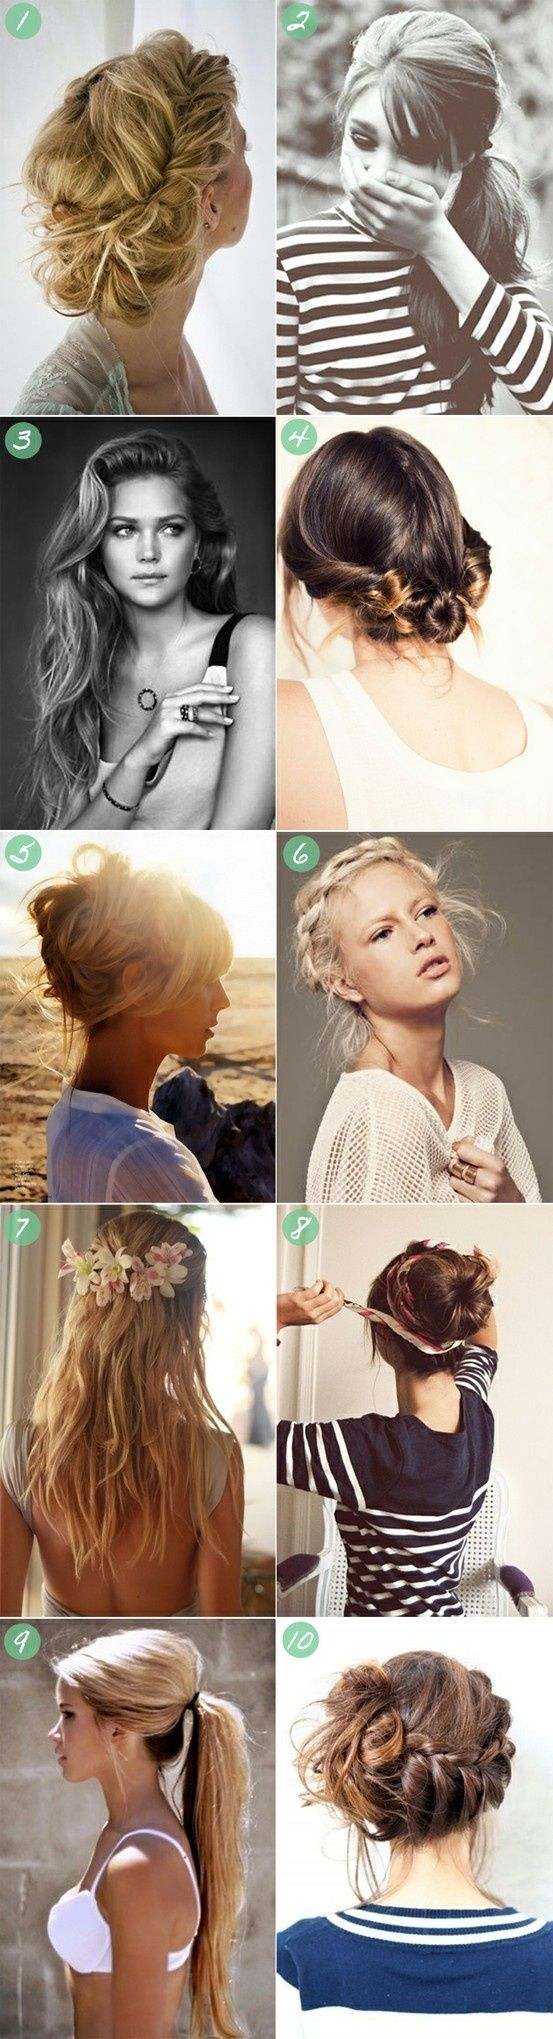 summer hair styles fashion blog pinterest hair style